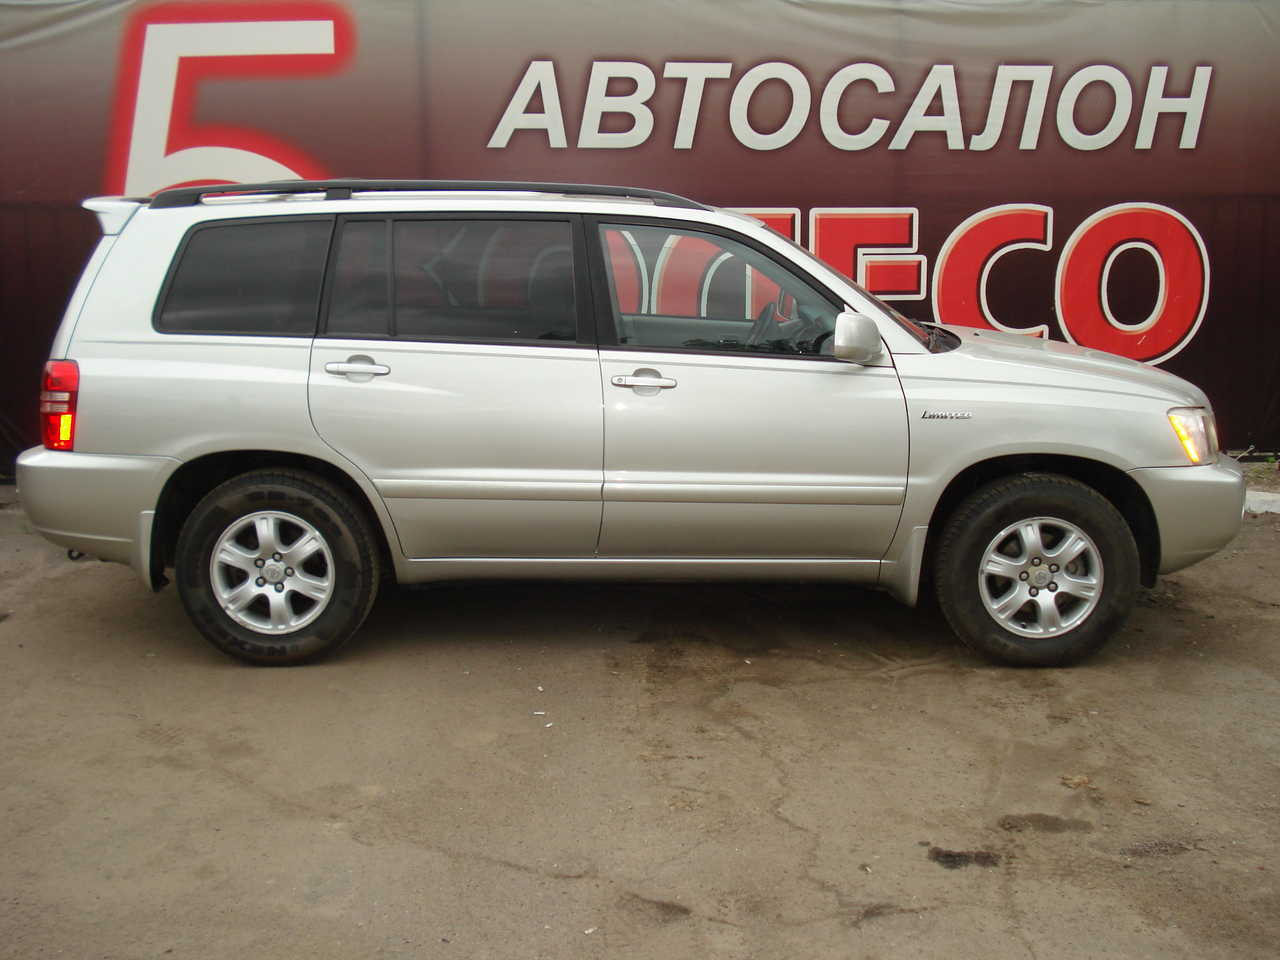 used 2003 toyota highlander photos 3000cc gasoline automatic for sale. Black Bedroom Furniture Sets. Home Design Ideas